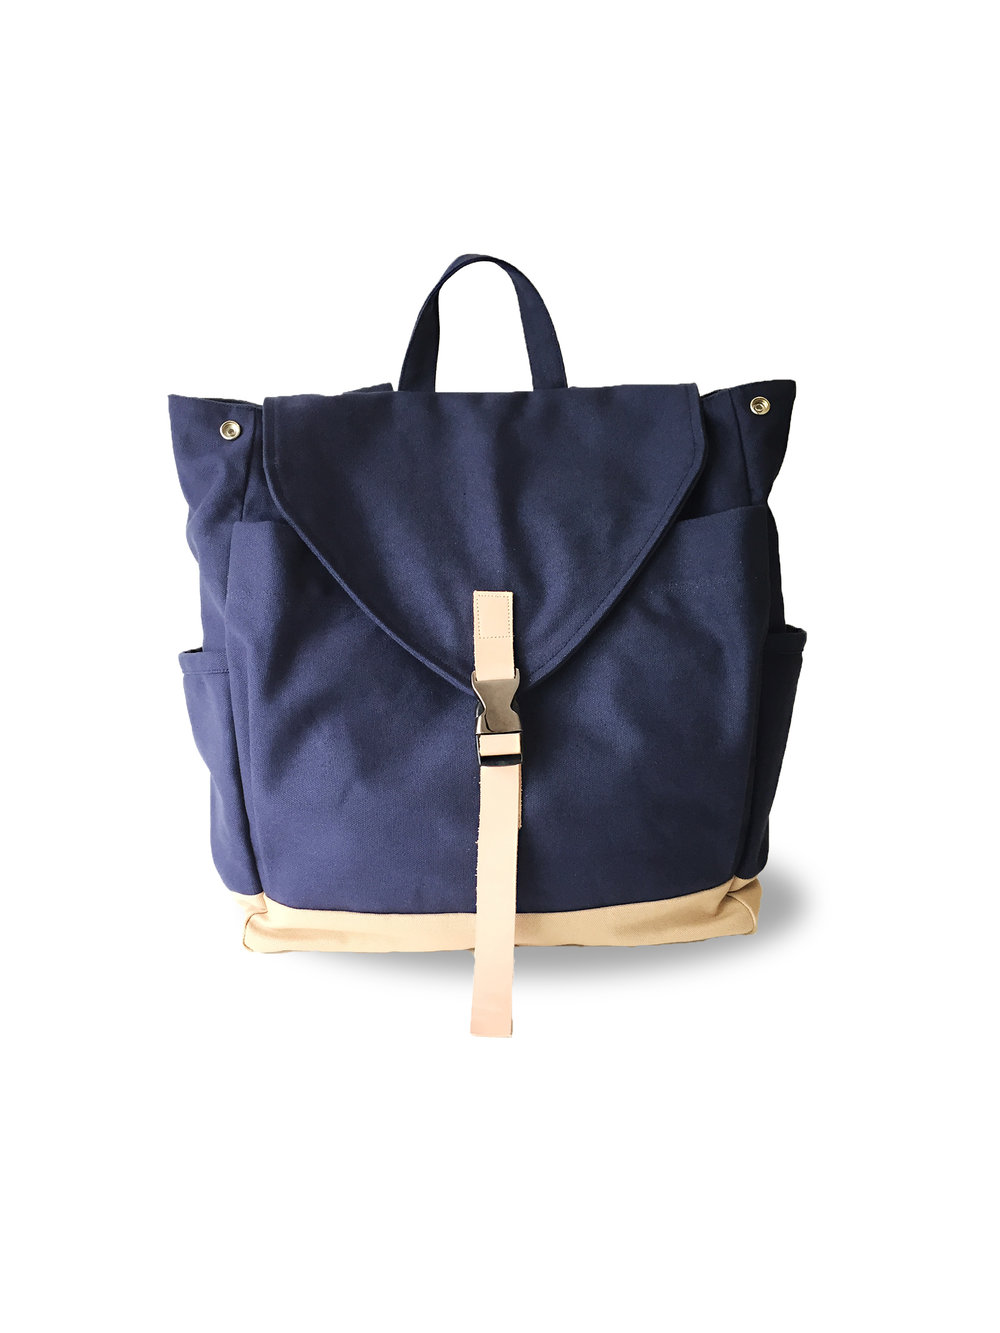 108 Marken Navy Blue